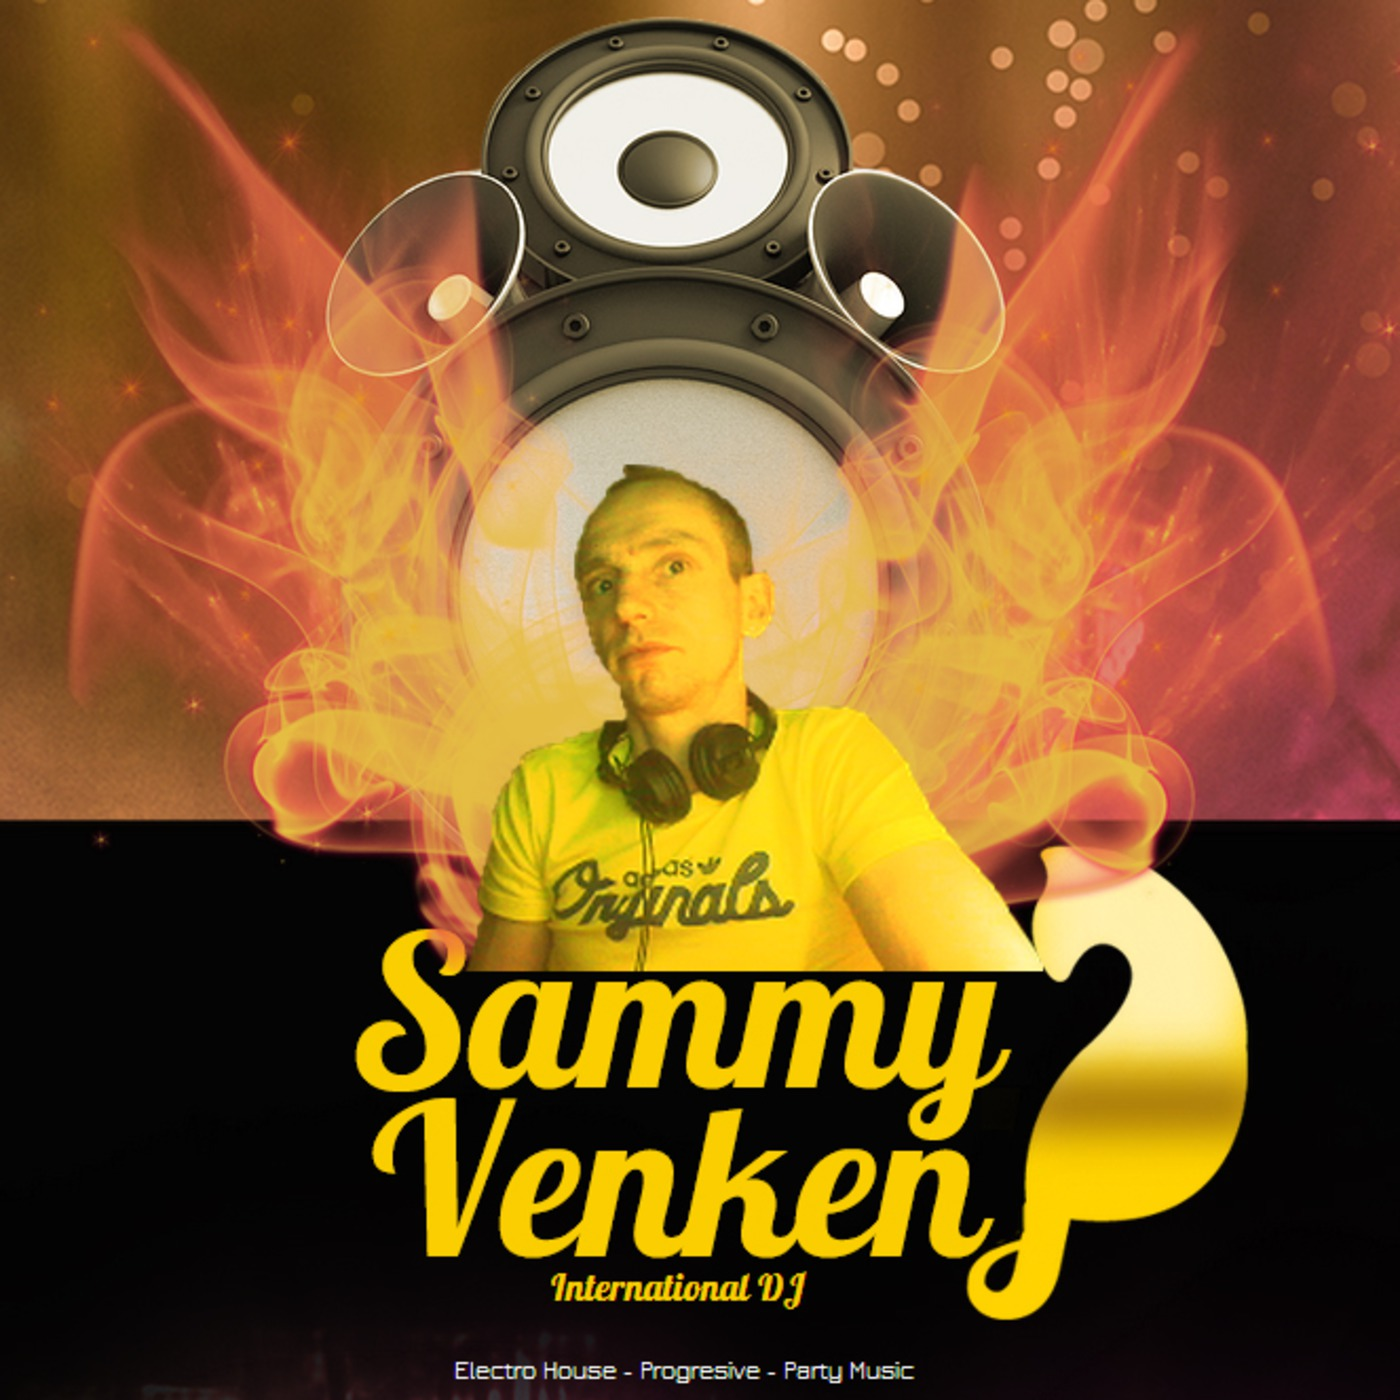 Sammy venken's Podcast